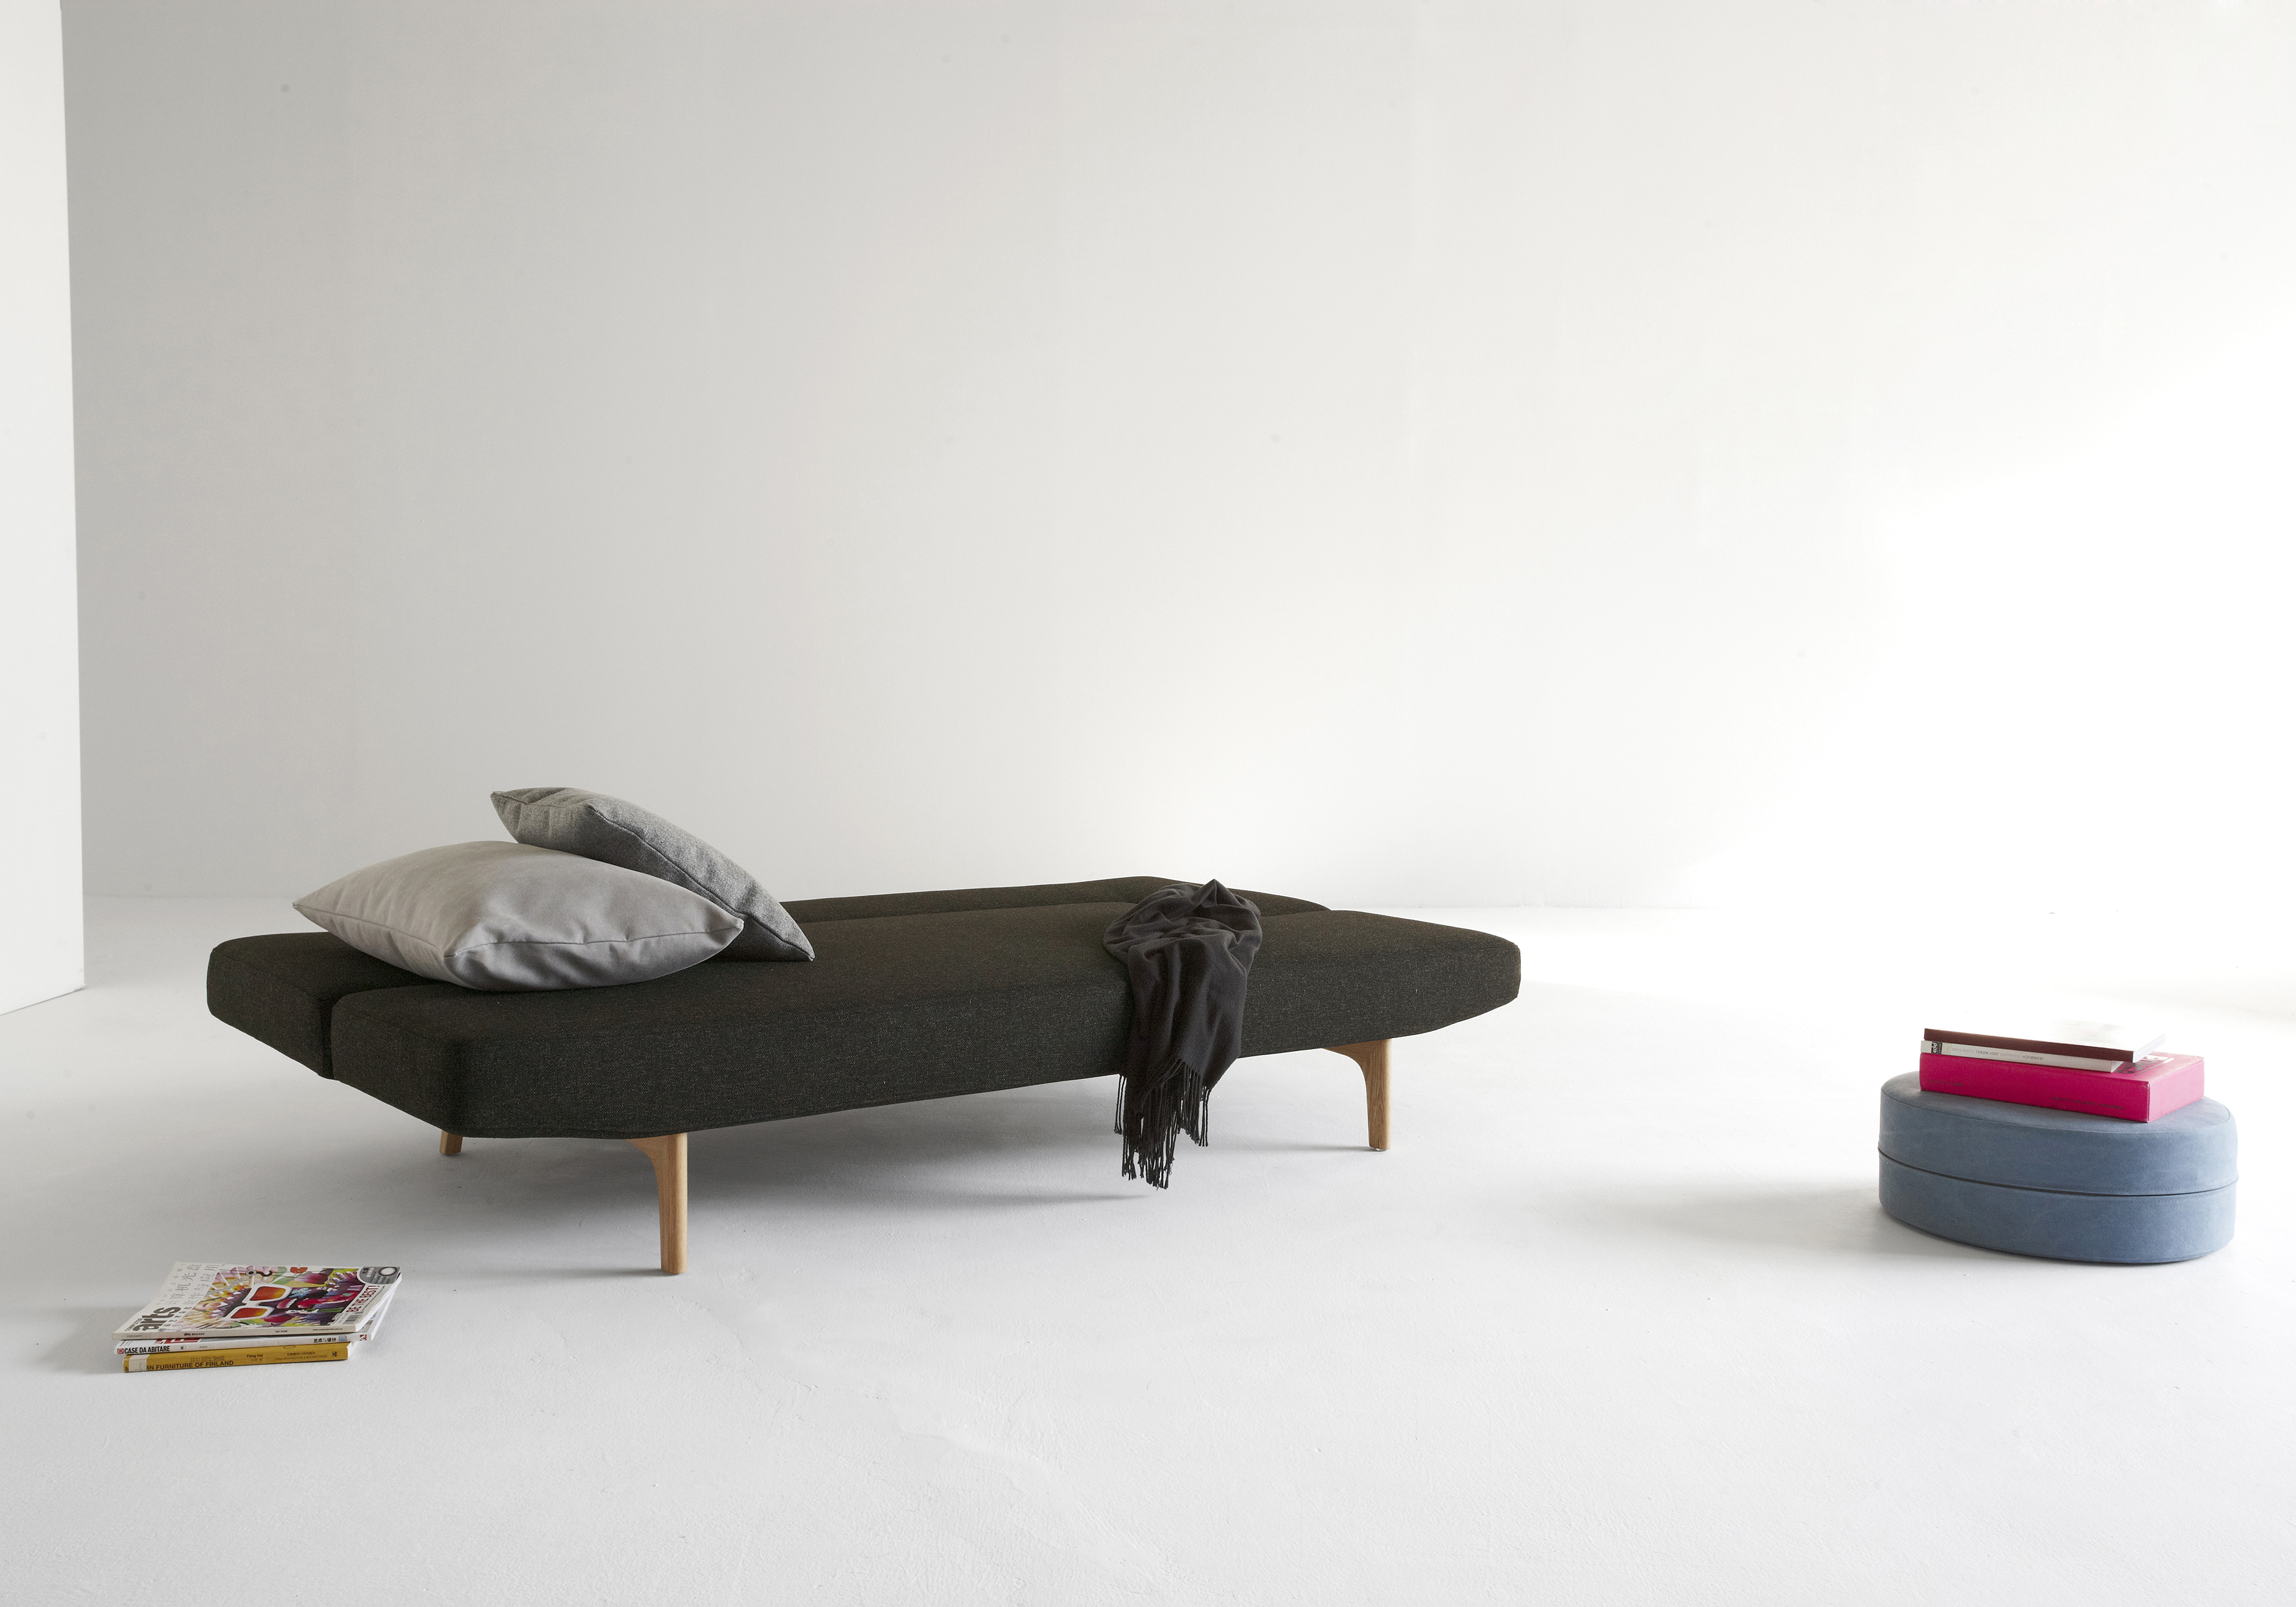 Contemporary Dark Brown or Grey Fabric Sofa Bed with Wood Legs - Click Image to Close